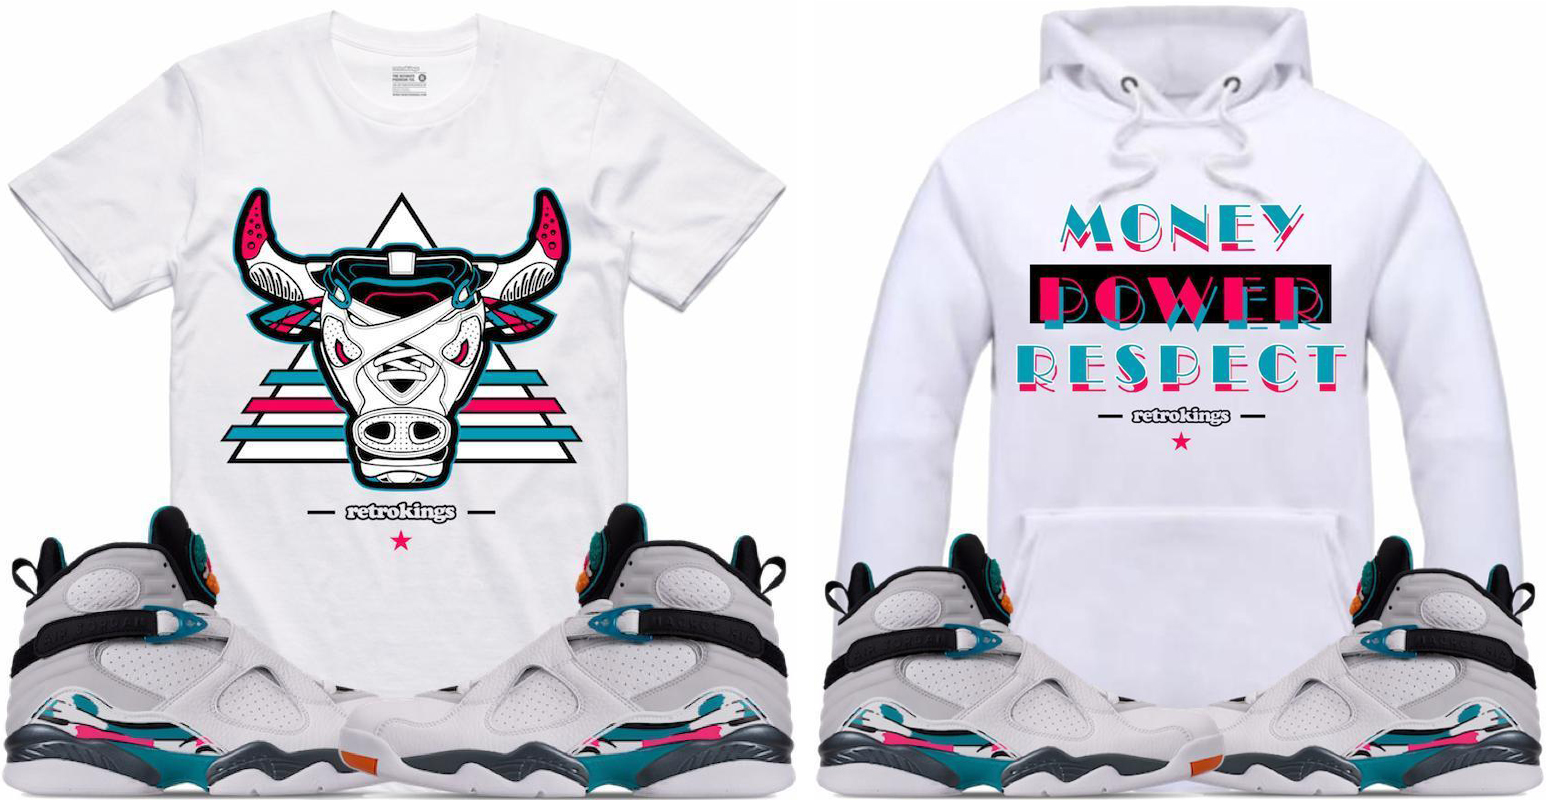 Jordan 8 South Beach Sneaker Clothing Retro Kings